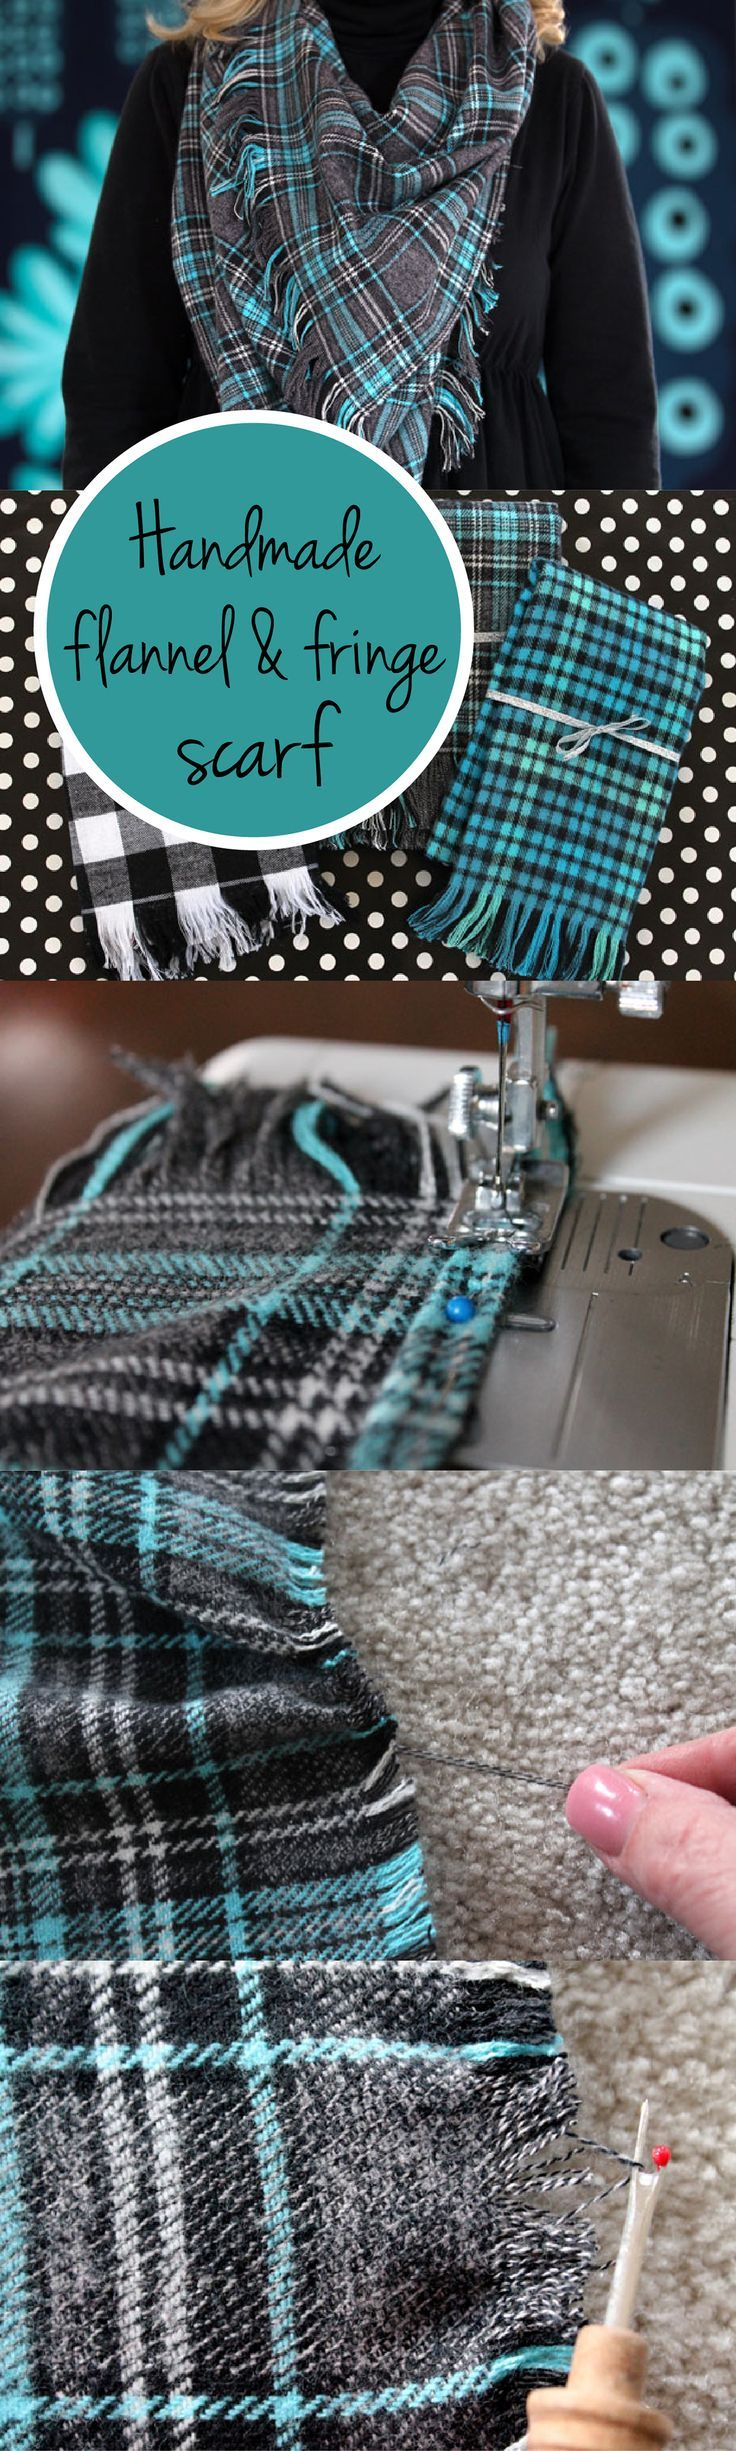 Perfect handmade gift for the holidays! DIY a flannel and fringe scarf that any girl would love to wear.  www.ehow.com/...